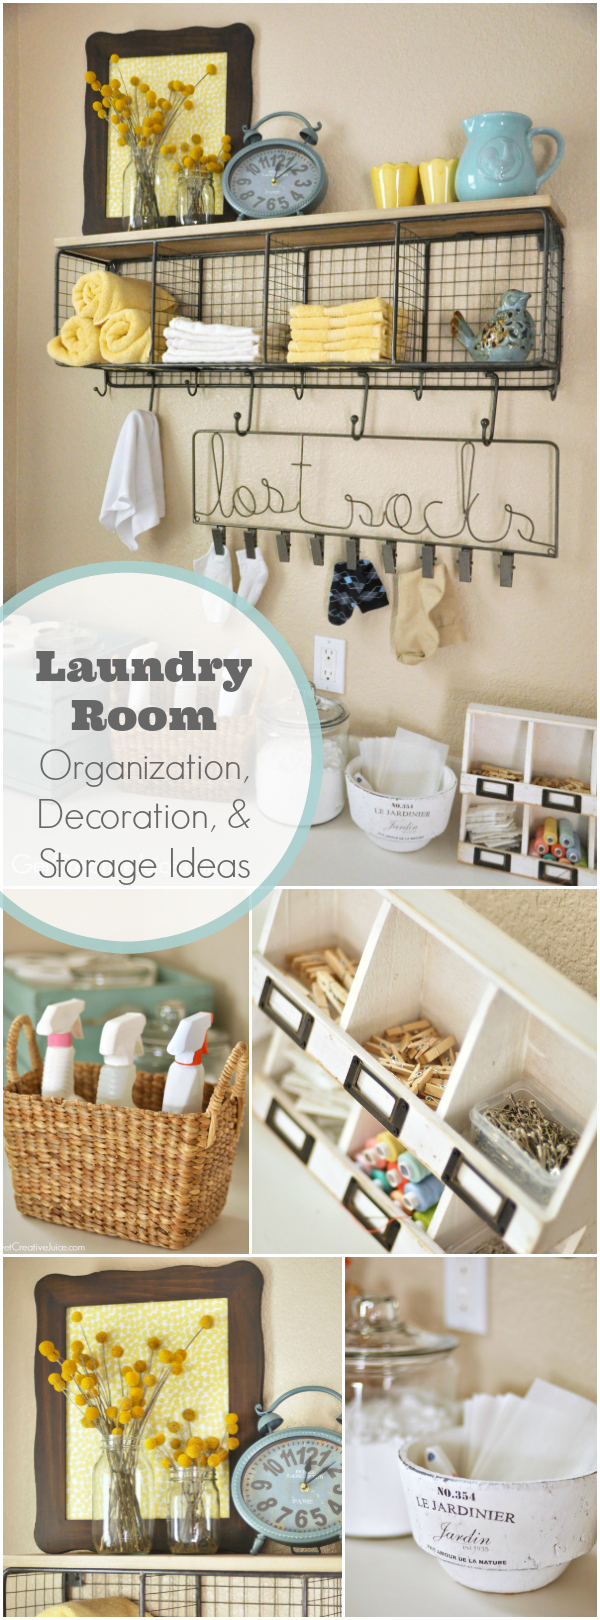 Laundry Room - Organization, Decoration, and Storage Ideas for your Home